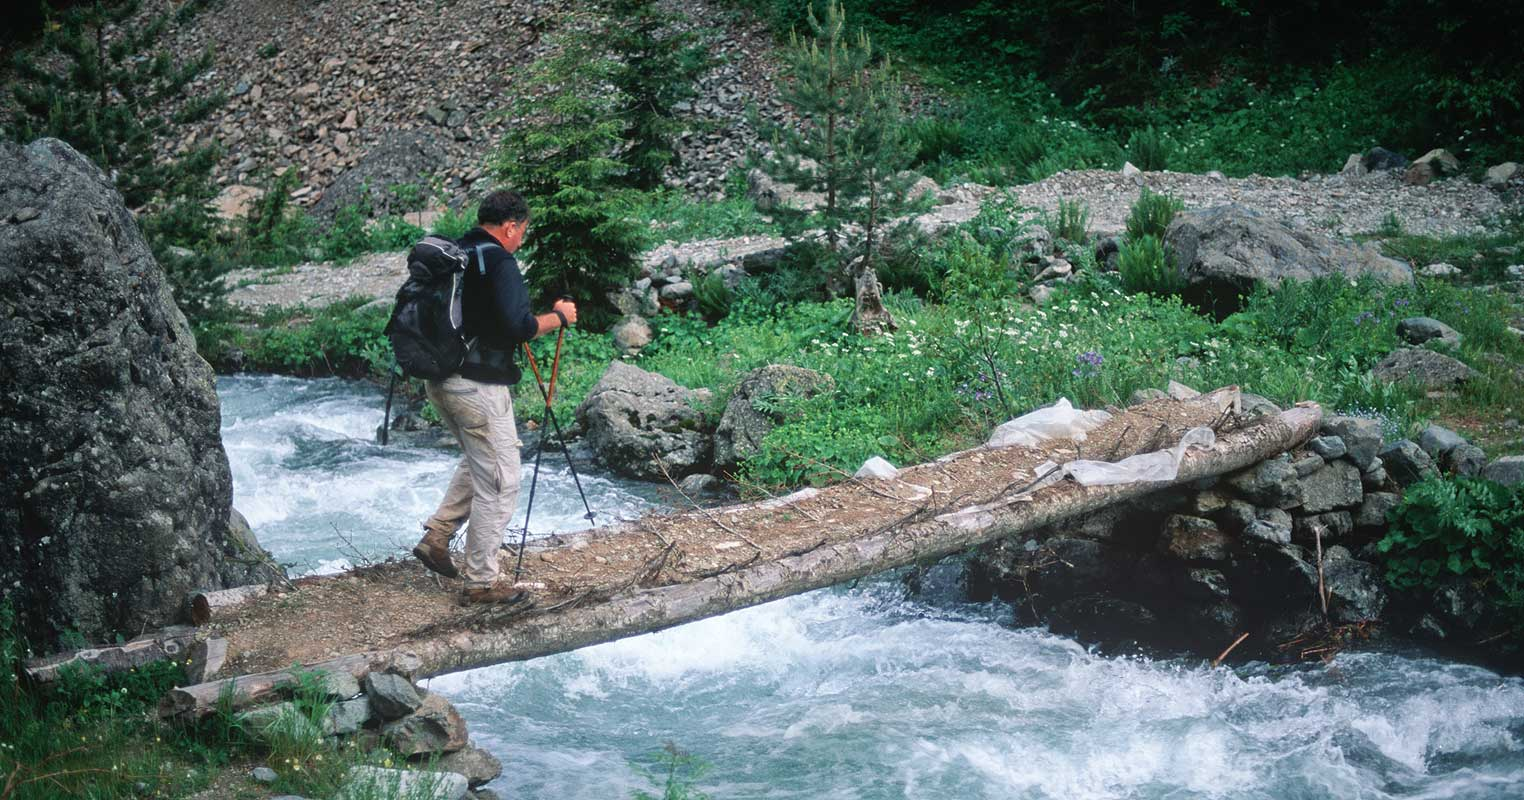 Stefano Ardito crossing the Barhal River